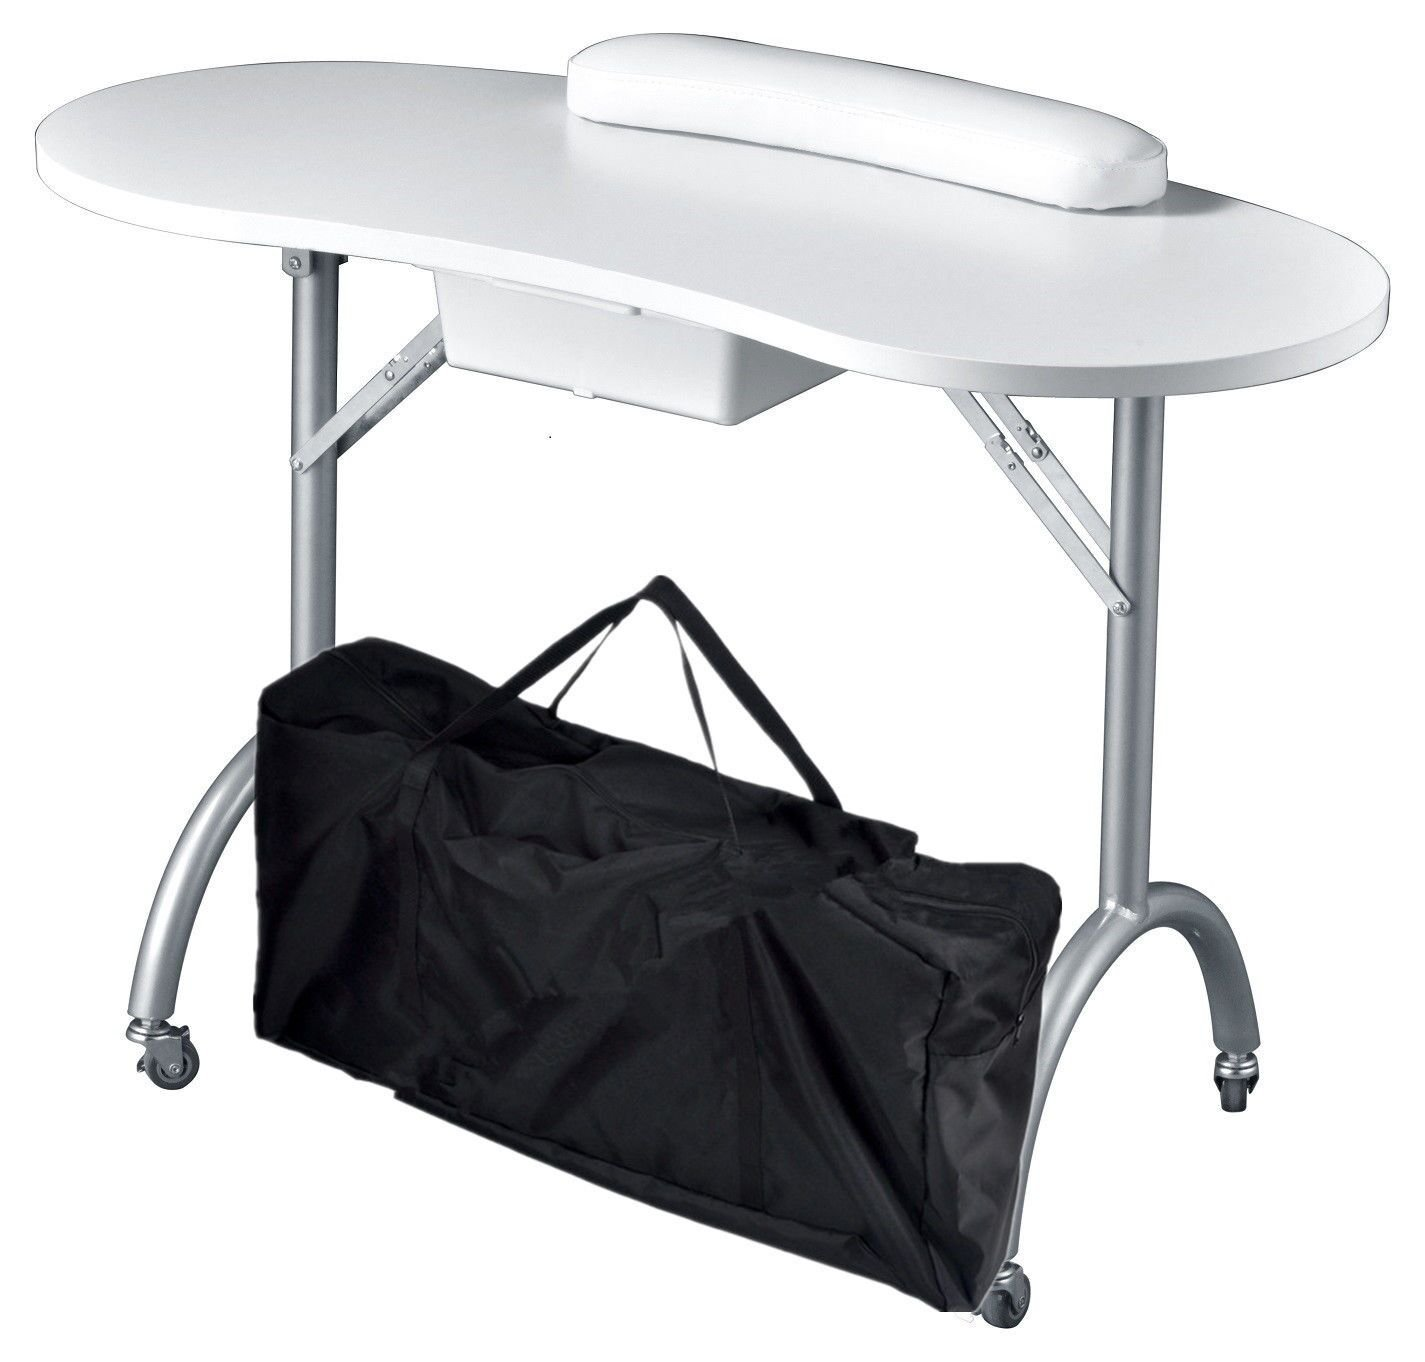 Portable White Manicure Table With Carrying Bag GreenLife